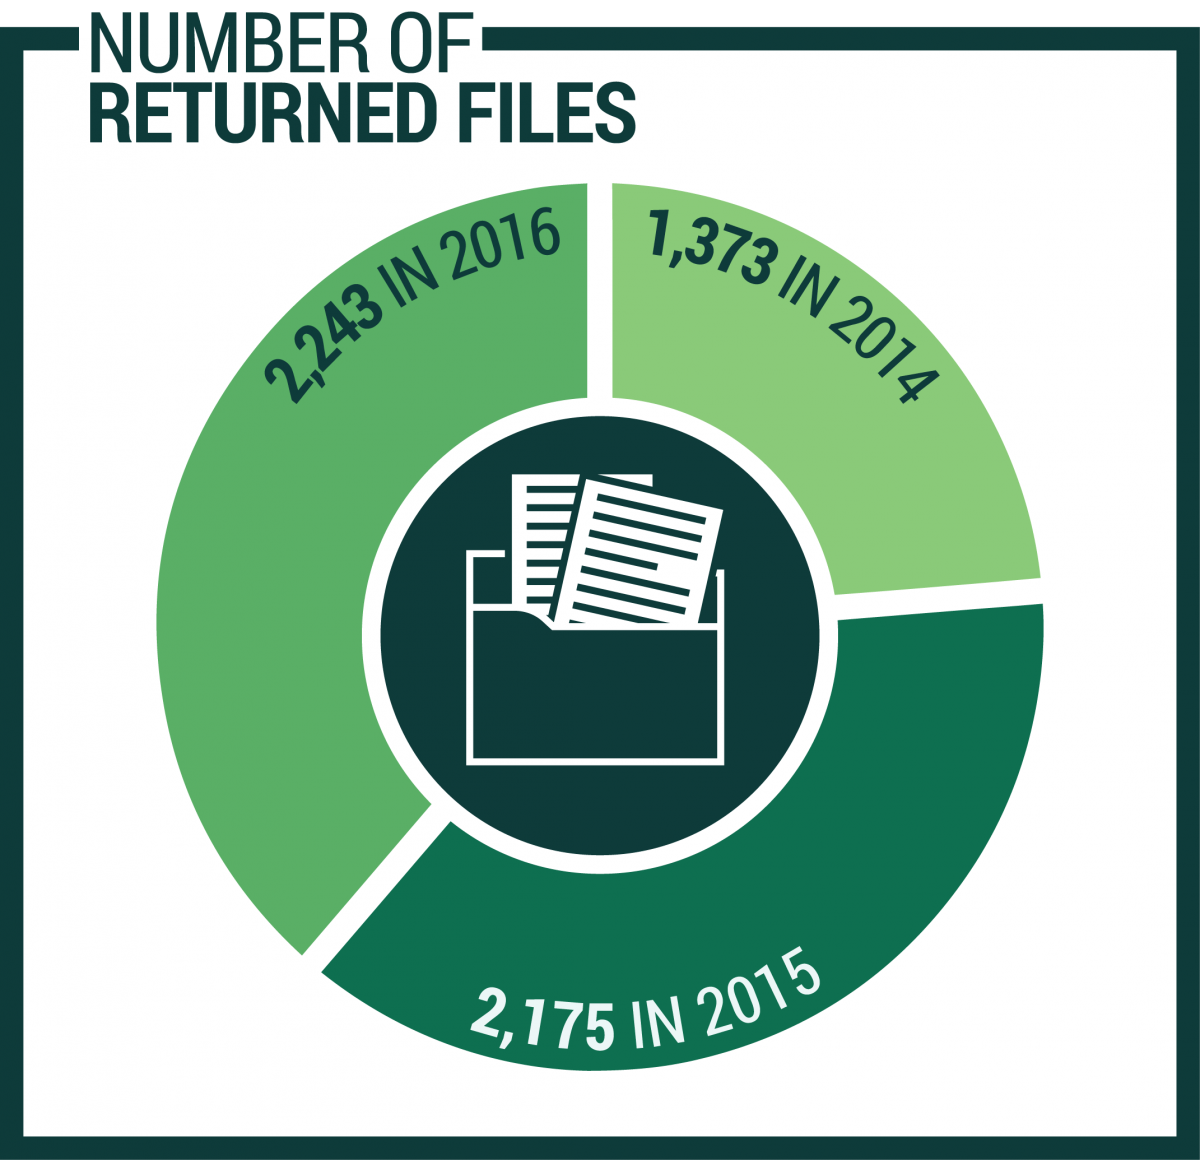 Number of Returned Files: 1371 in 2014, 2175 in 2015, and 2243 in 2016